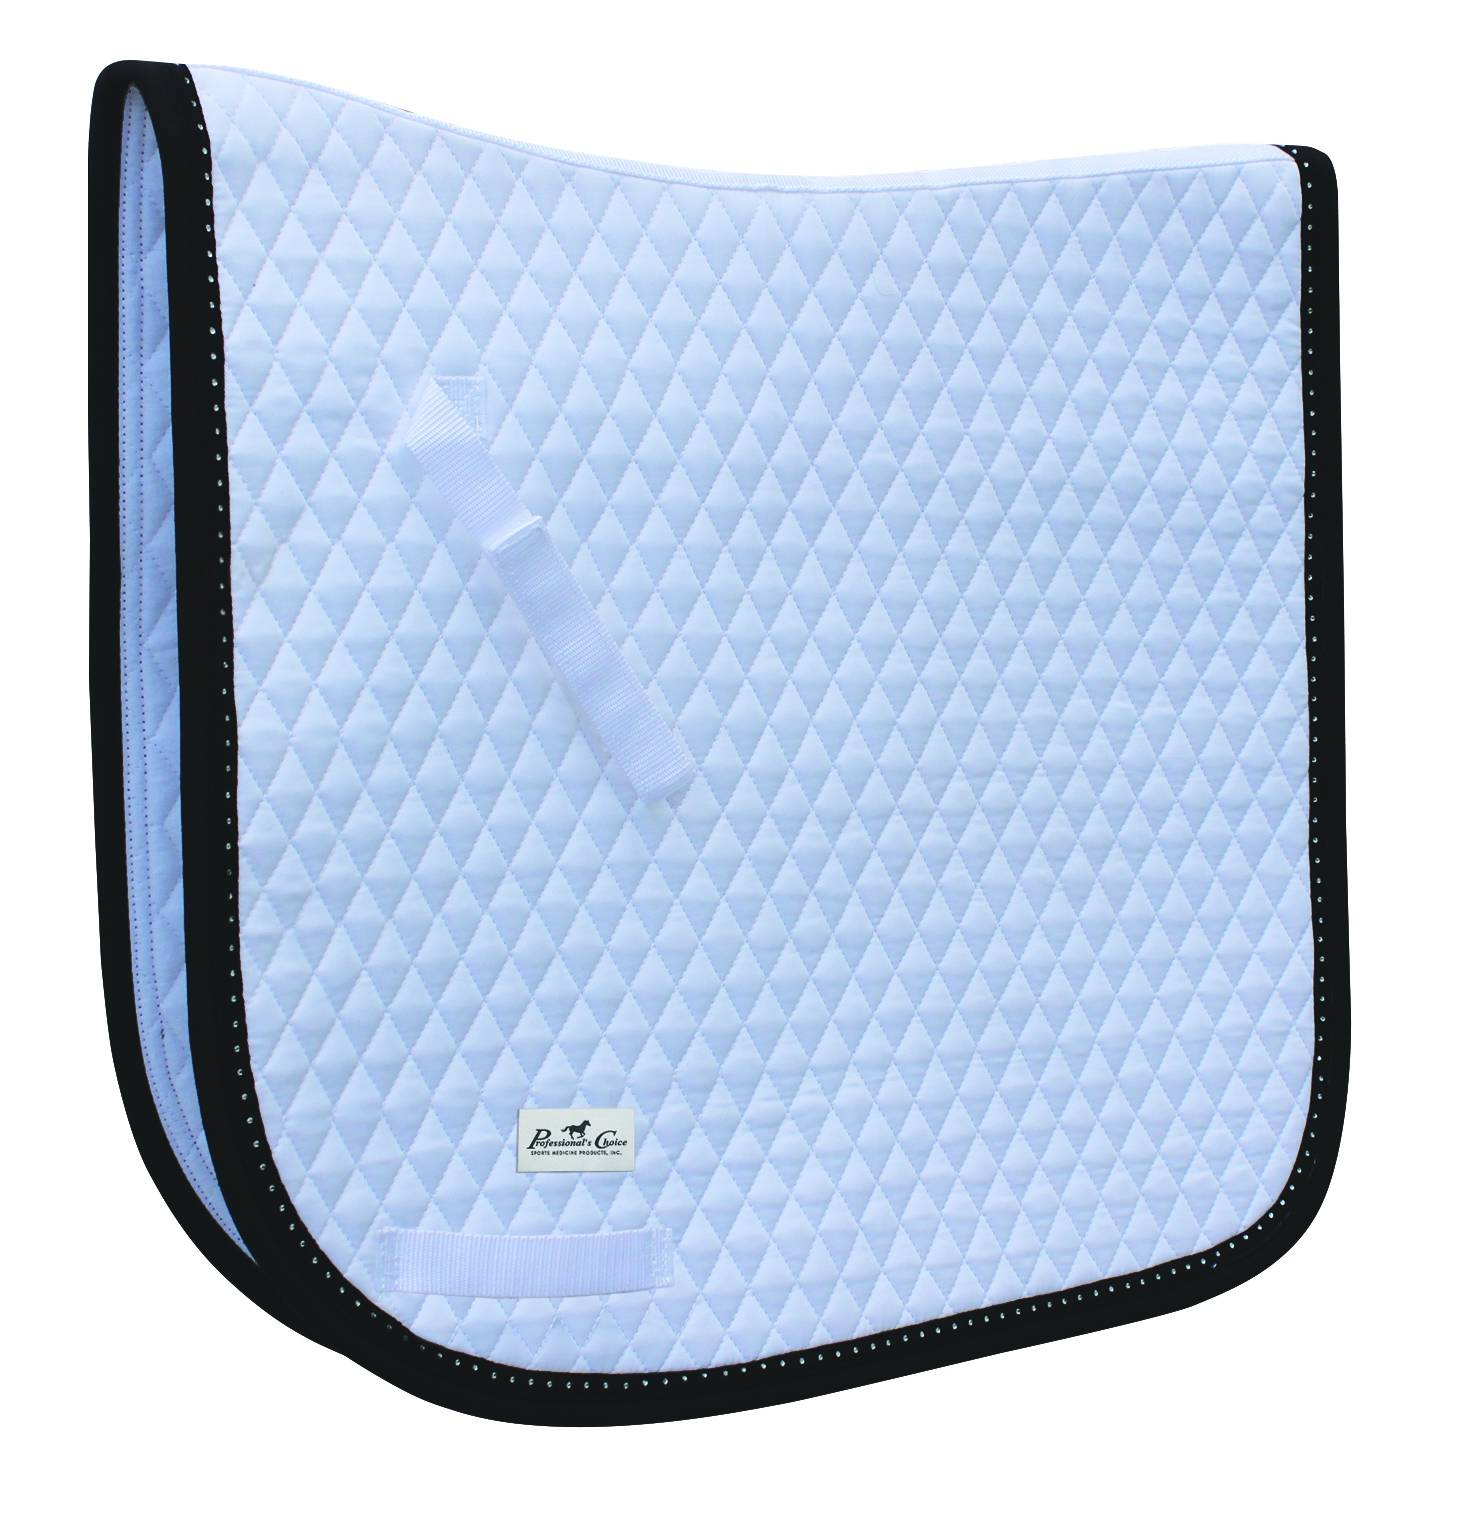 Professionals Choice Quilted Dressage Pad - Black Patent with Crystals